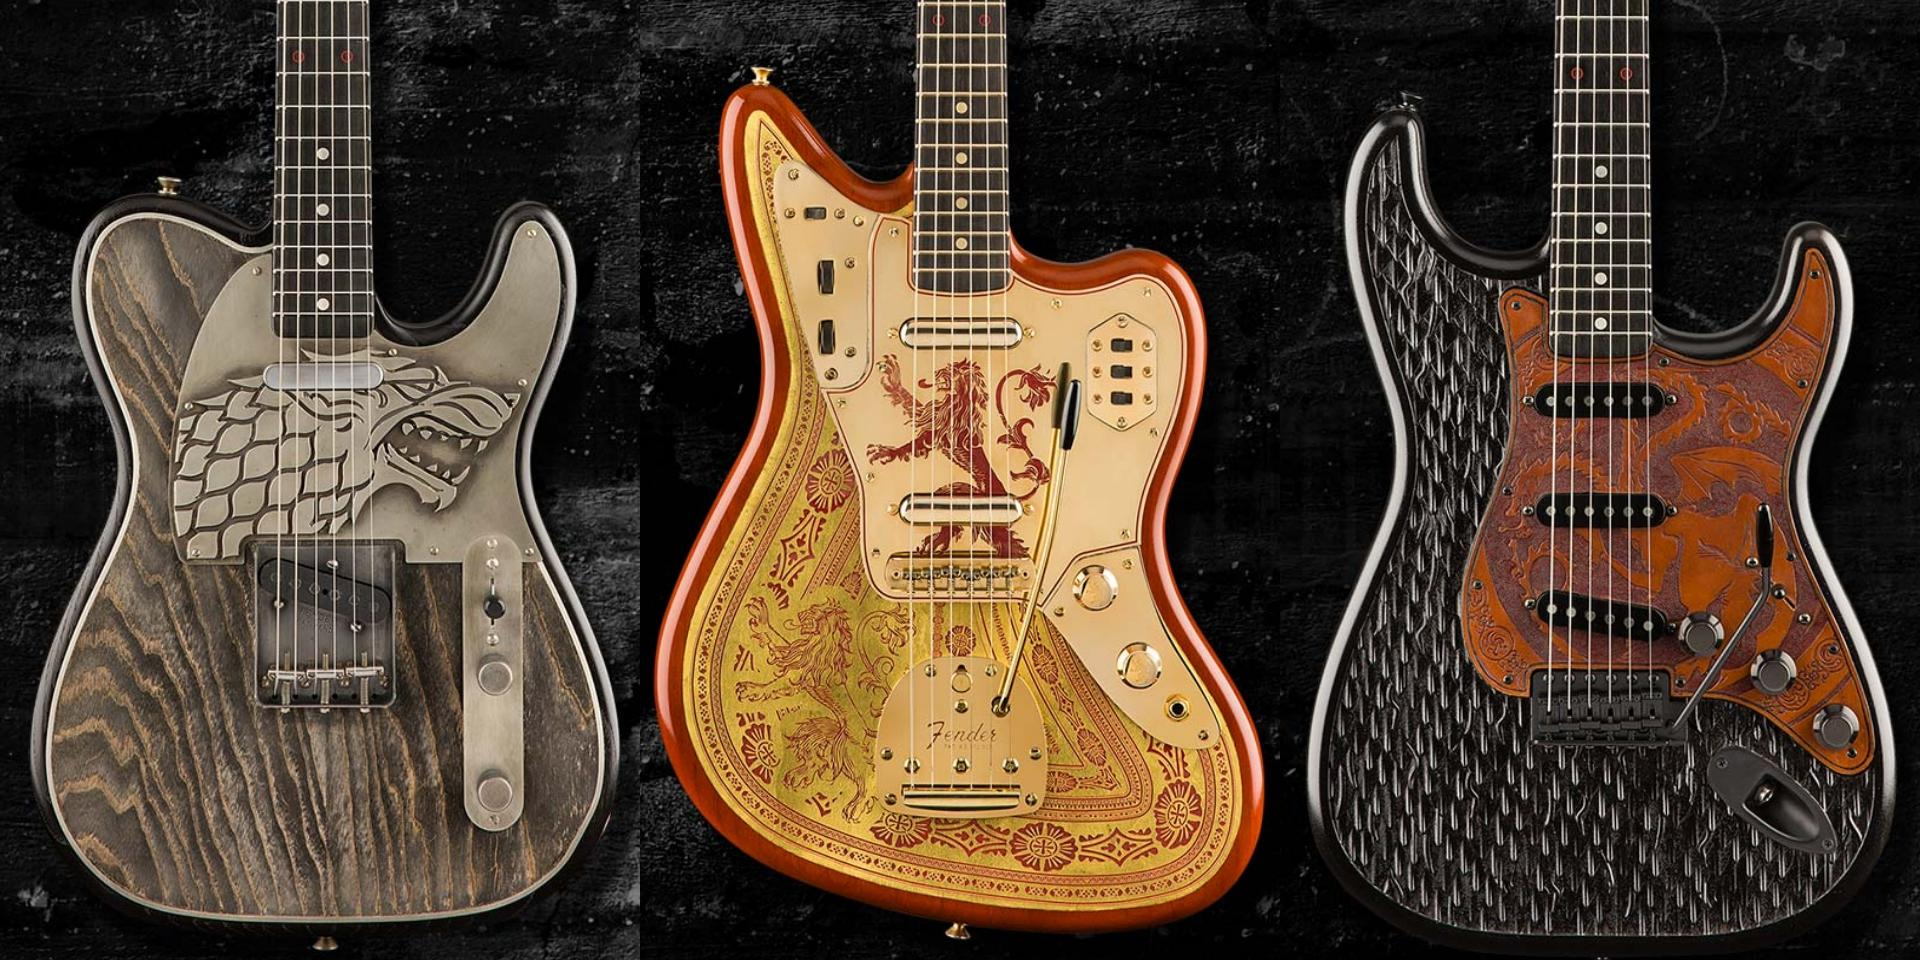 fender-game-of-thrones-guitars-cover